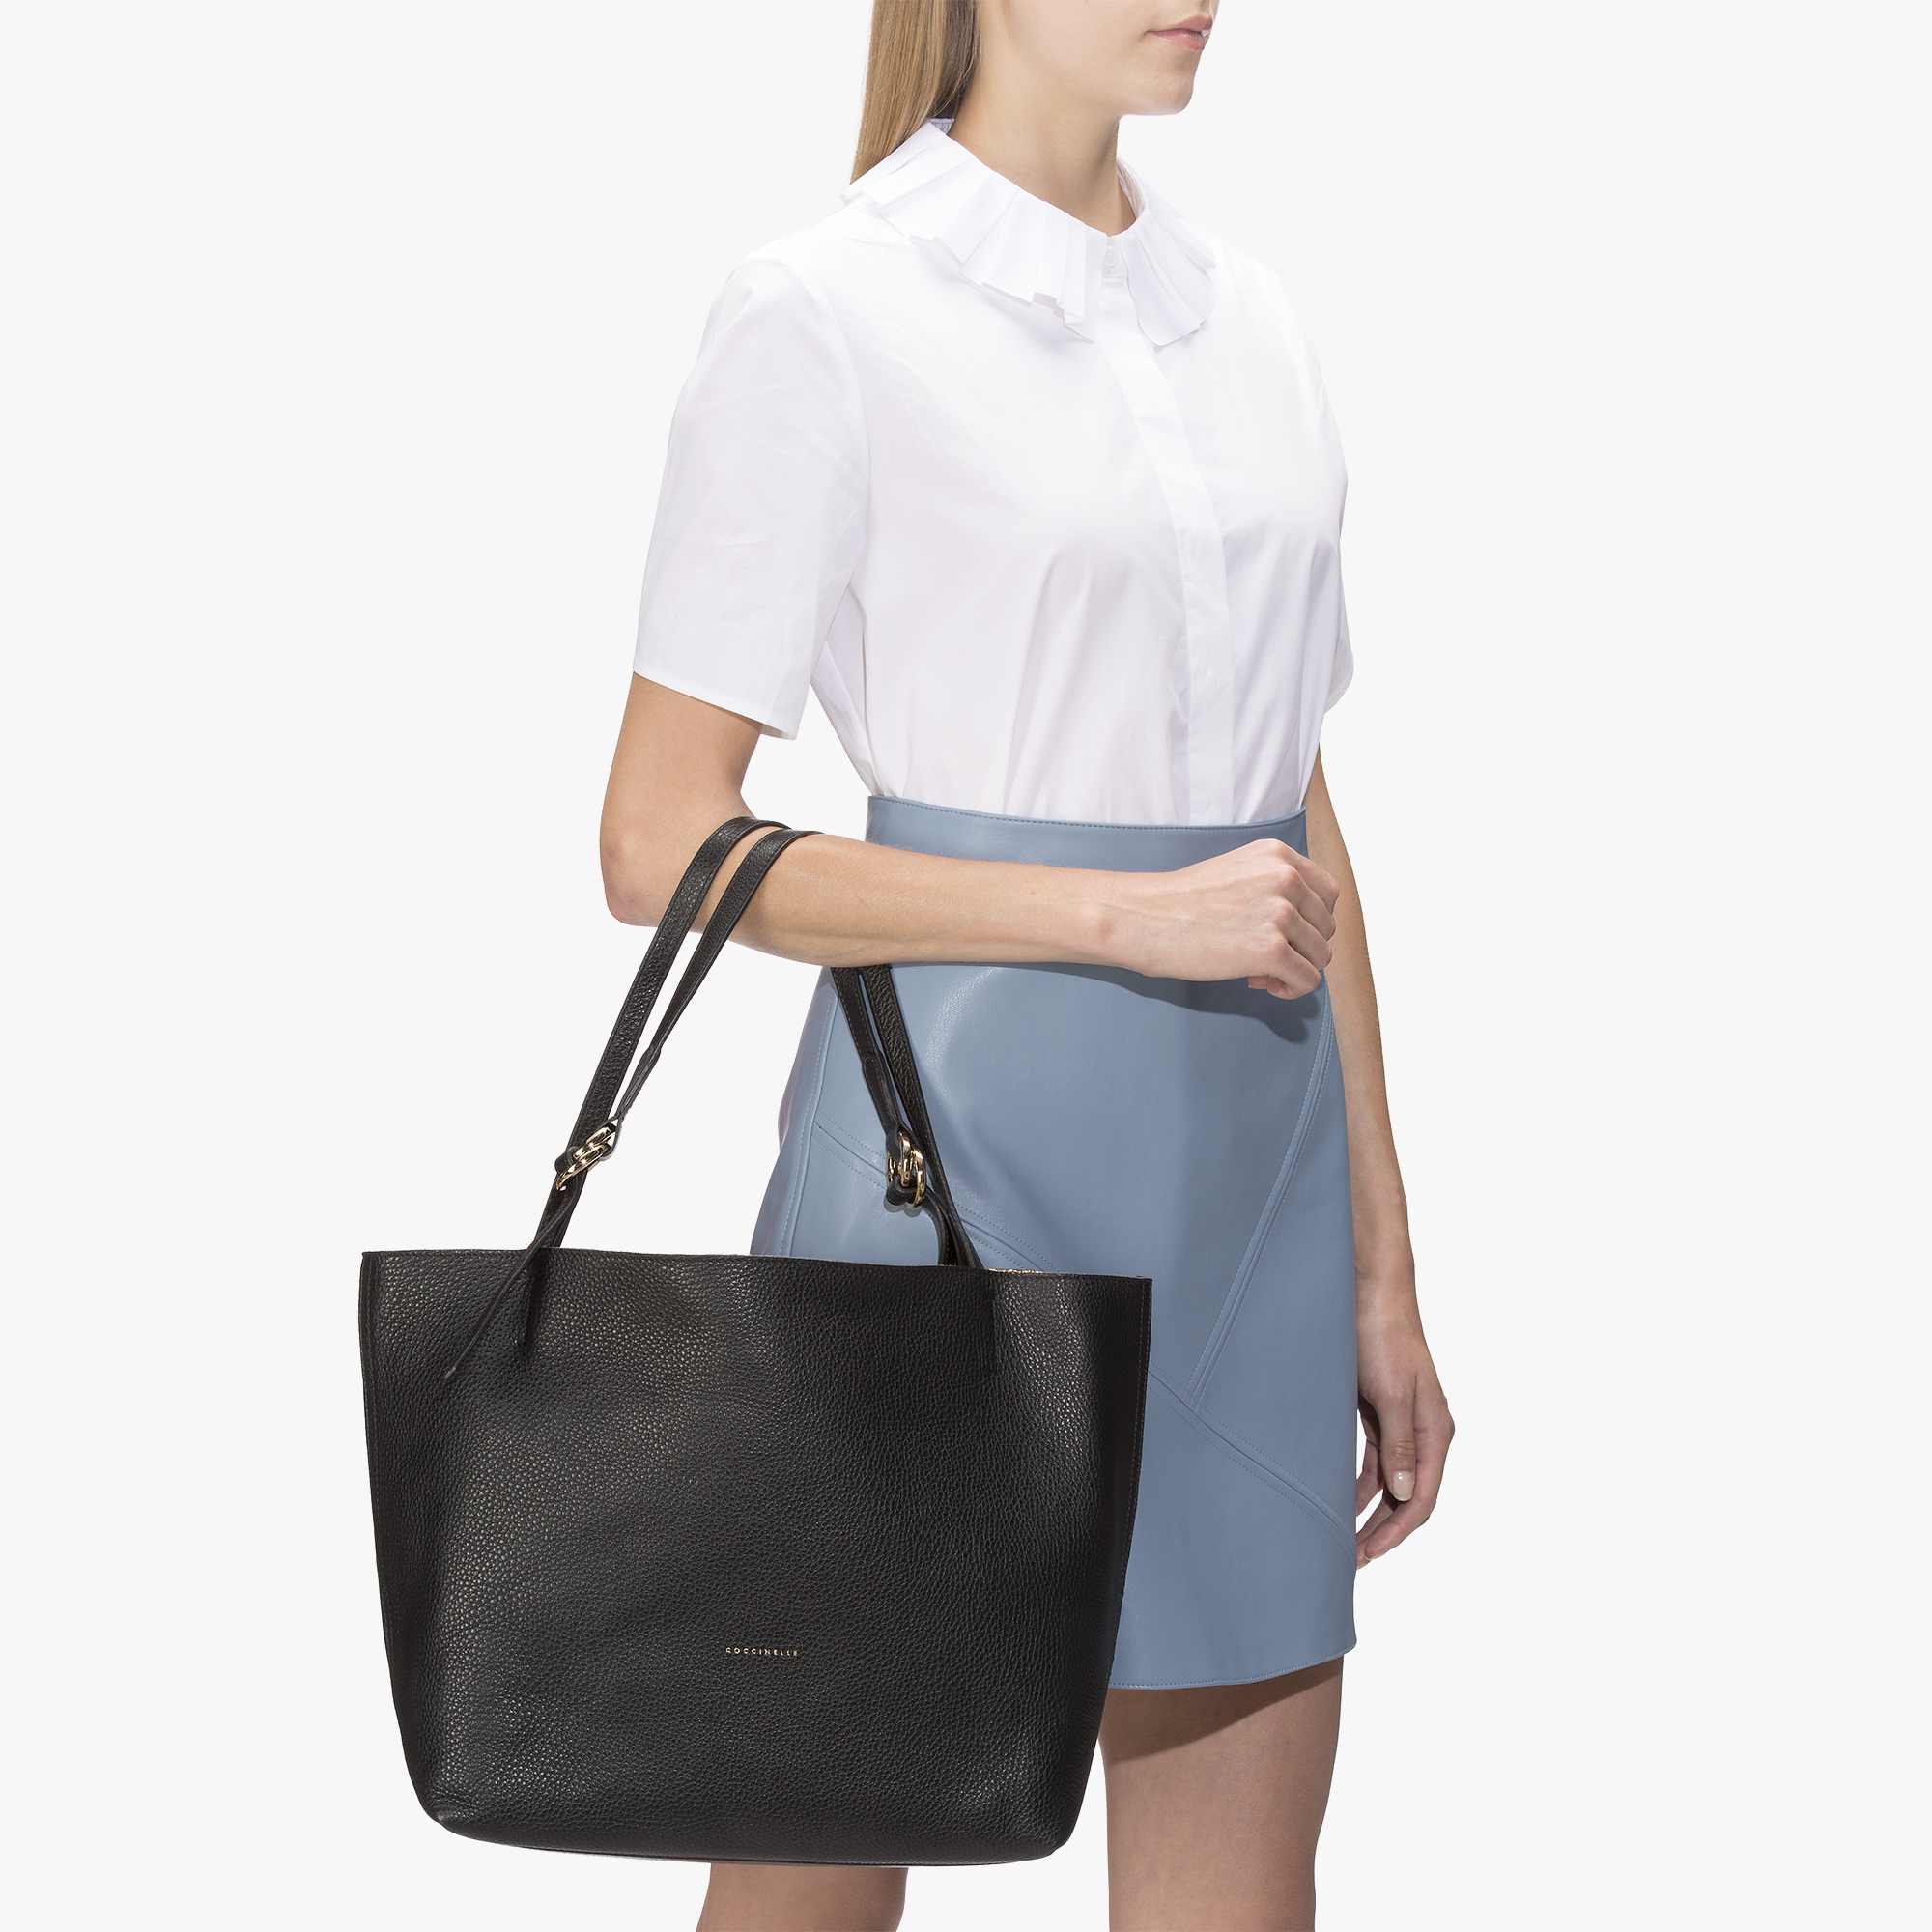 Coccinelle Davon leather shopping tote